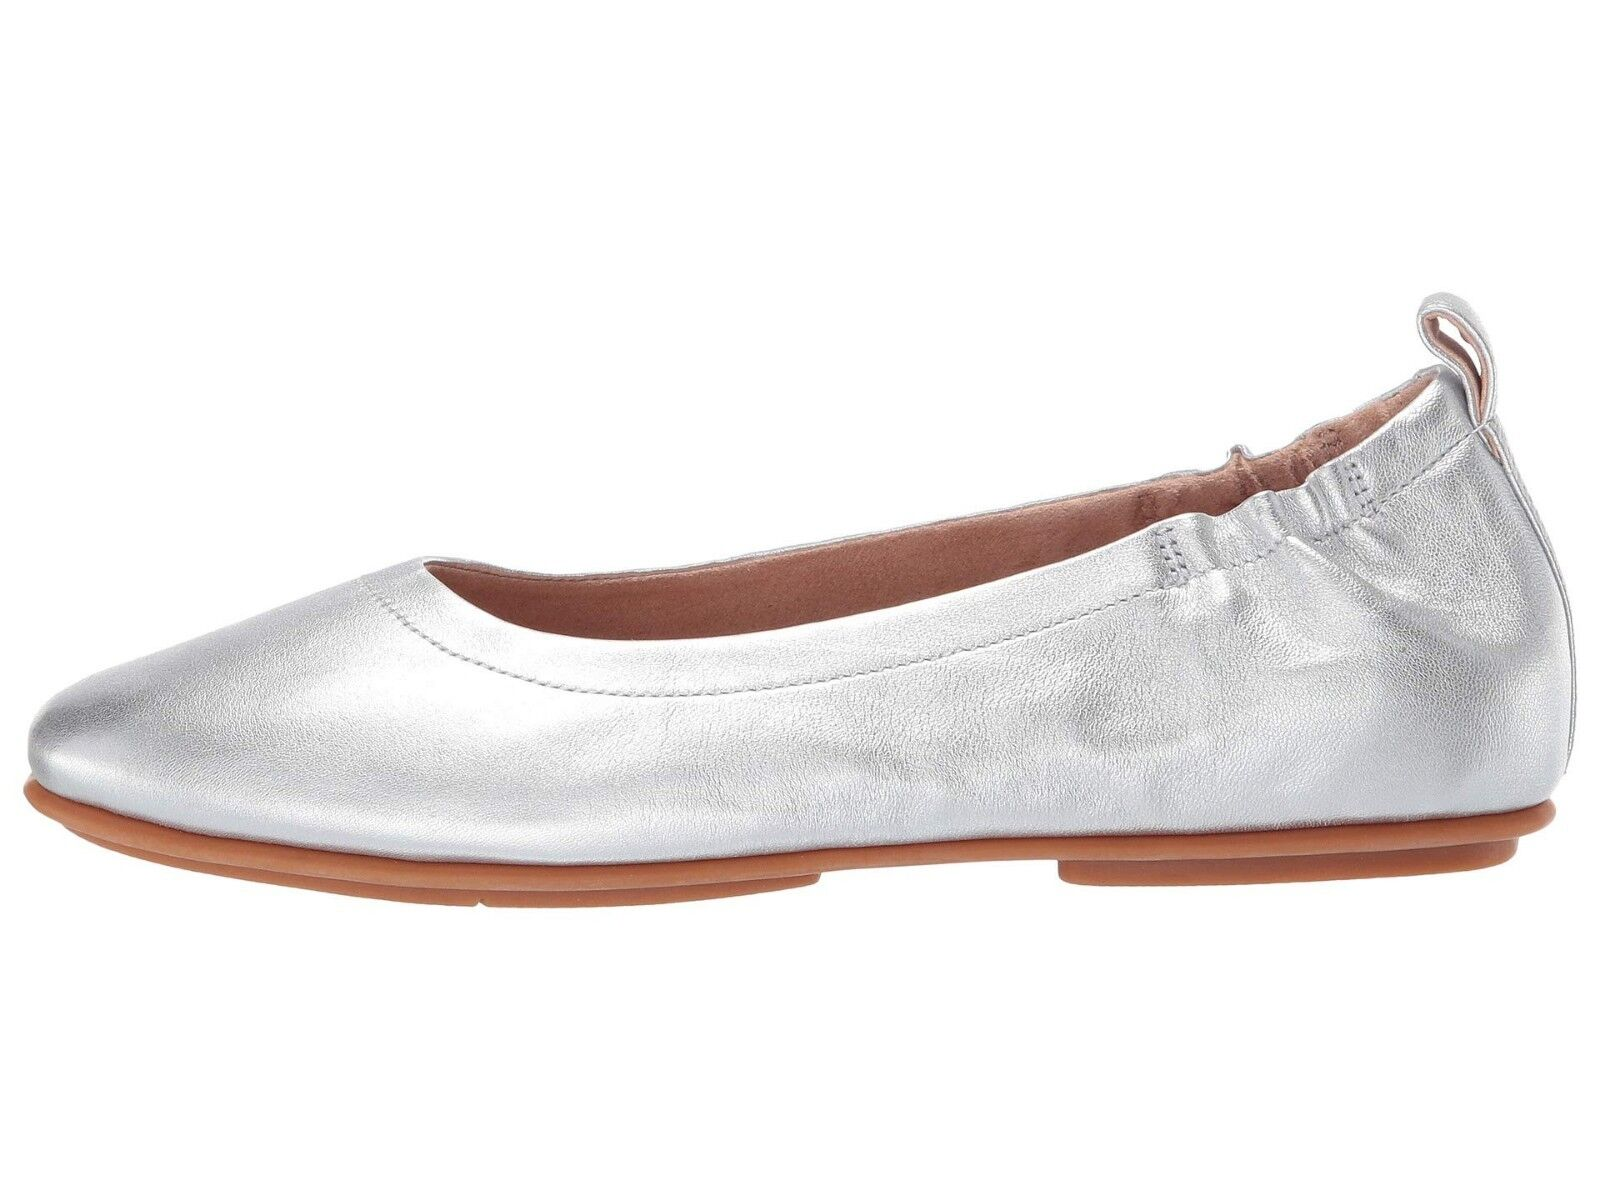 Women's Shoes Fitflop ALLEGRO Closed Toe Leather Ballet Flats Q74-011 SILVER 1